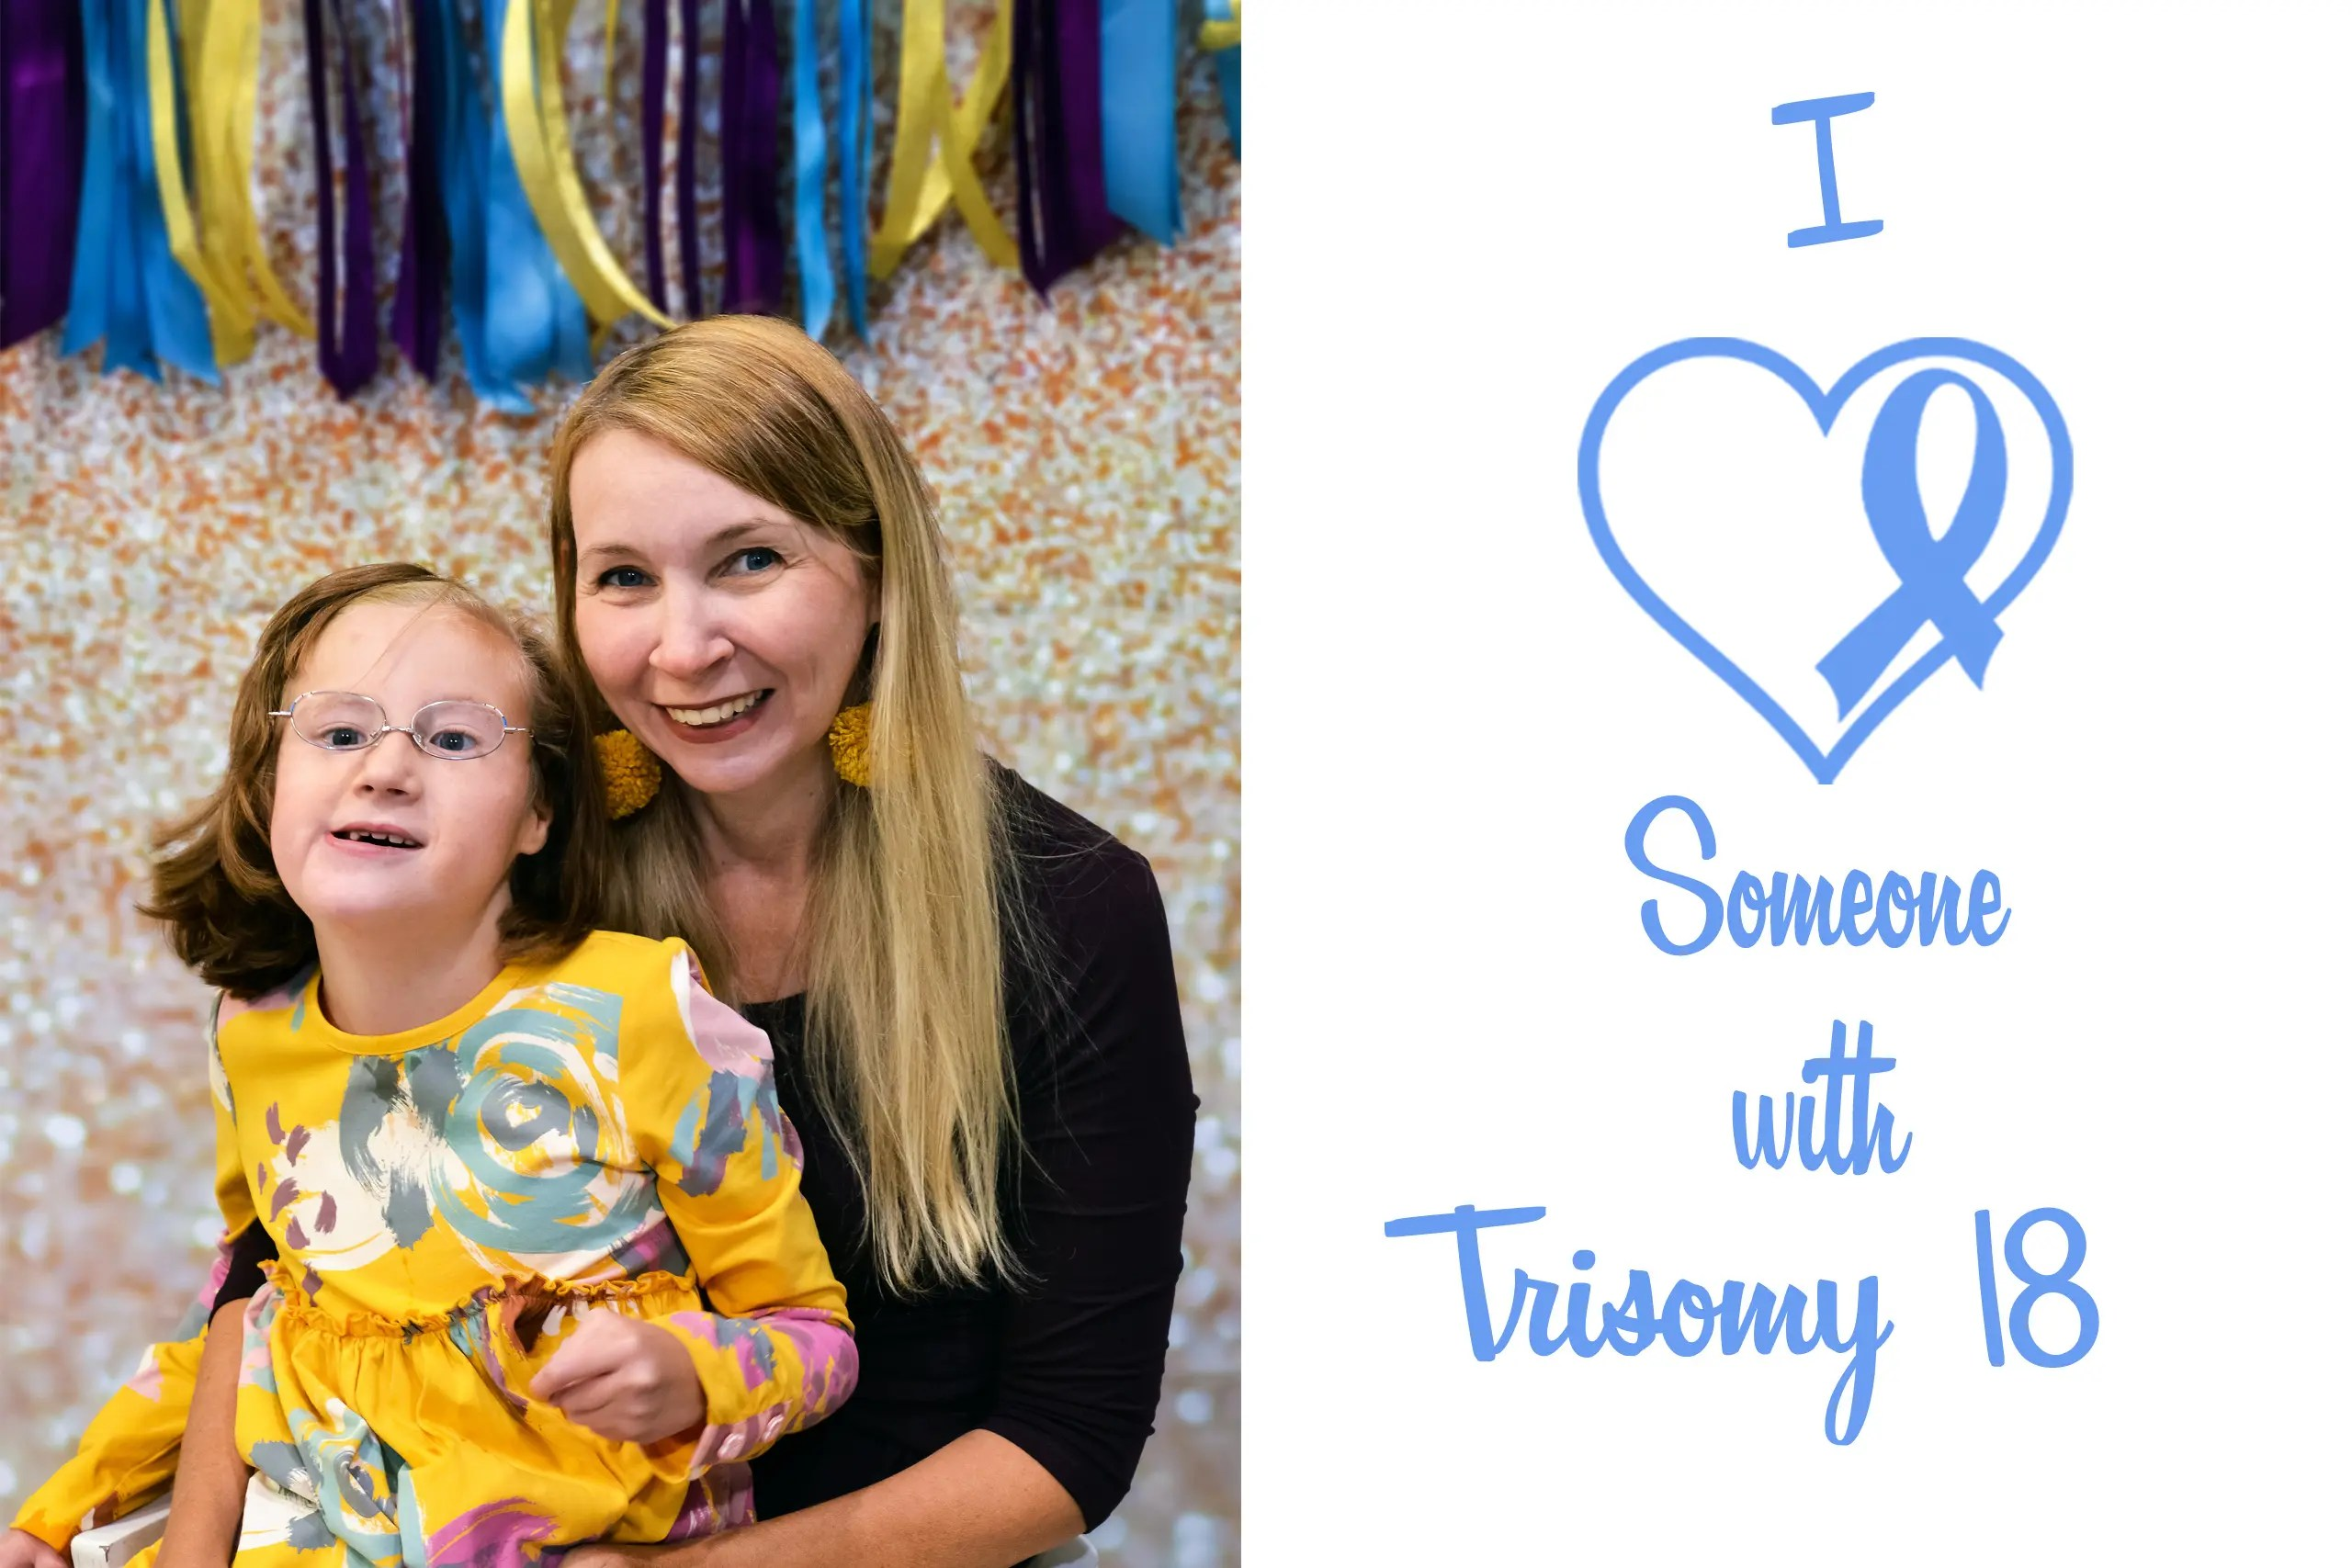 Trisomy 18 Awareness Day: Sharing My Family's Journey